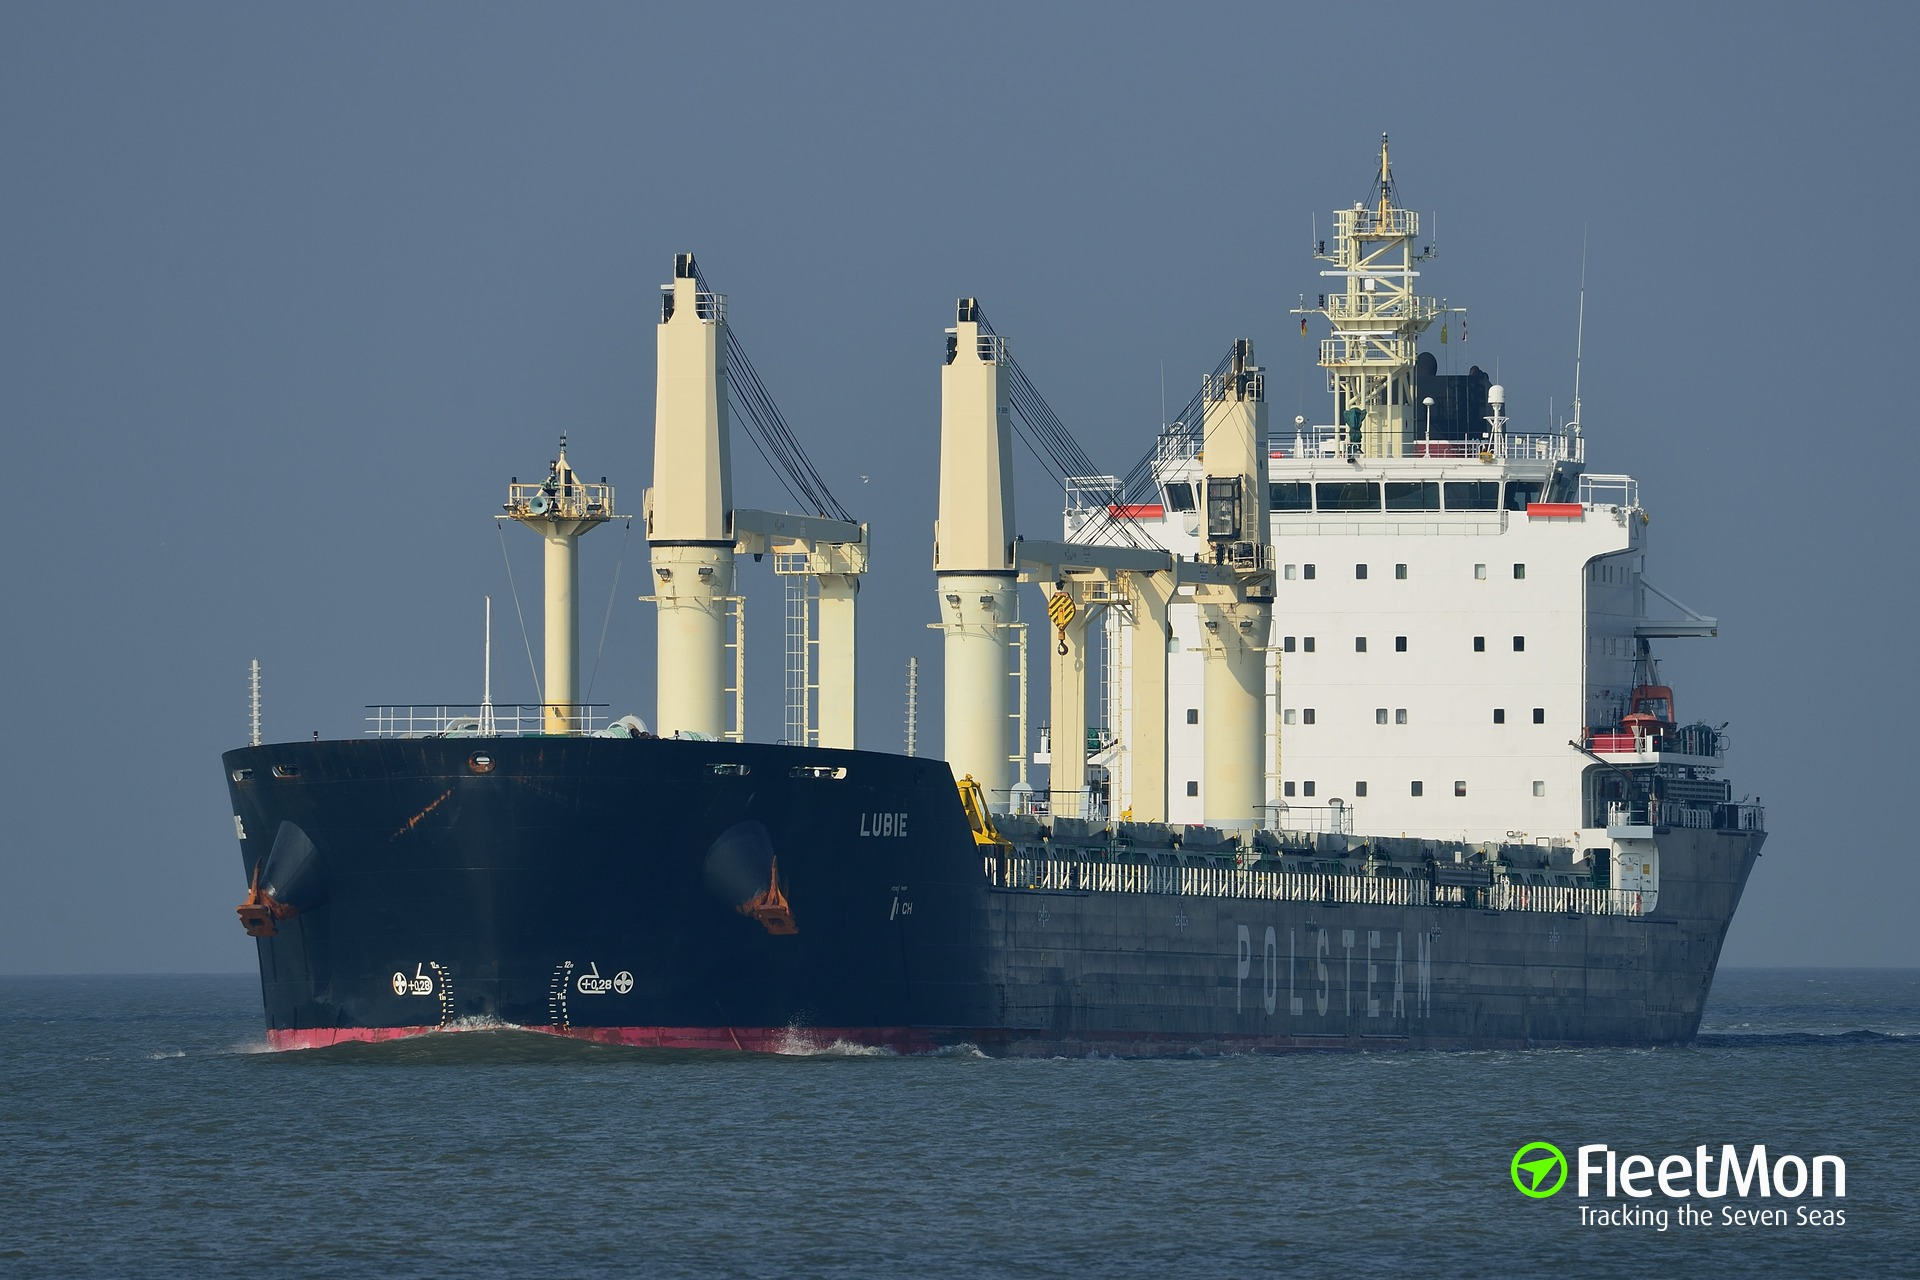 Bulk carrier LUBIE collided with sailboat, Port Huron